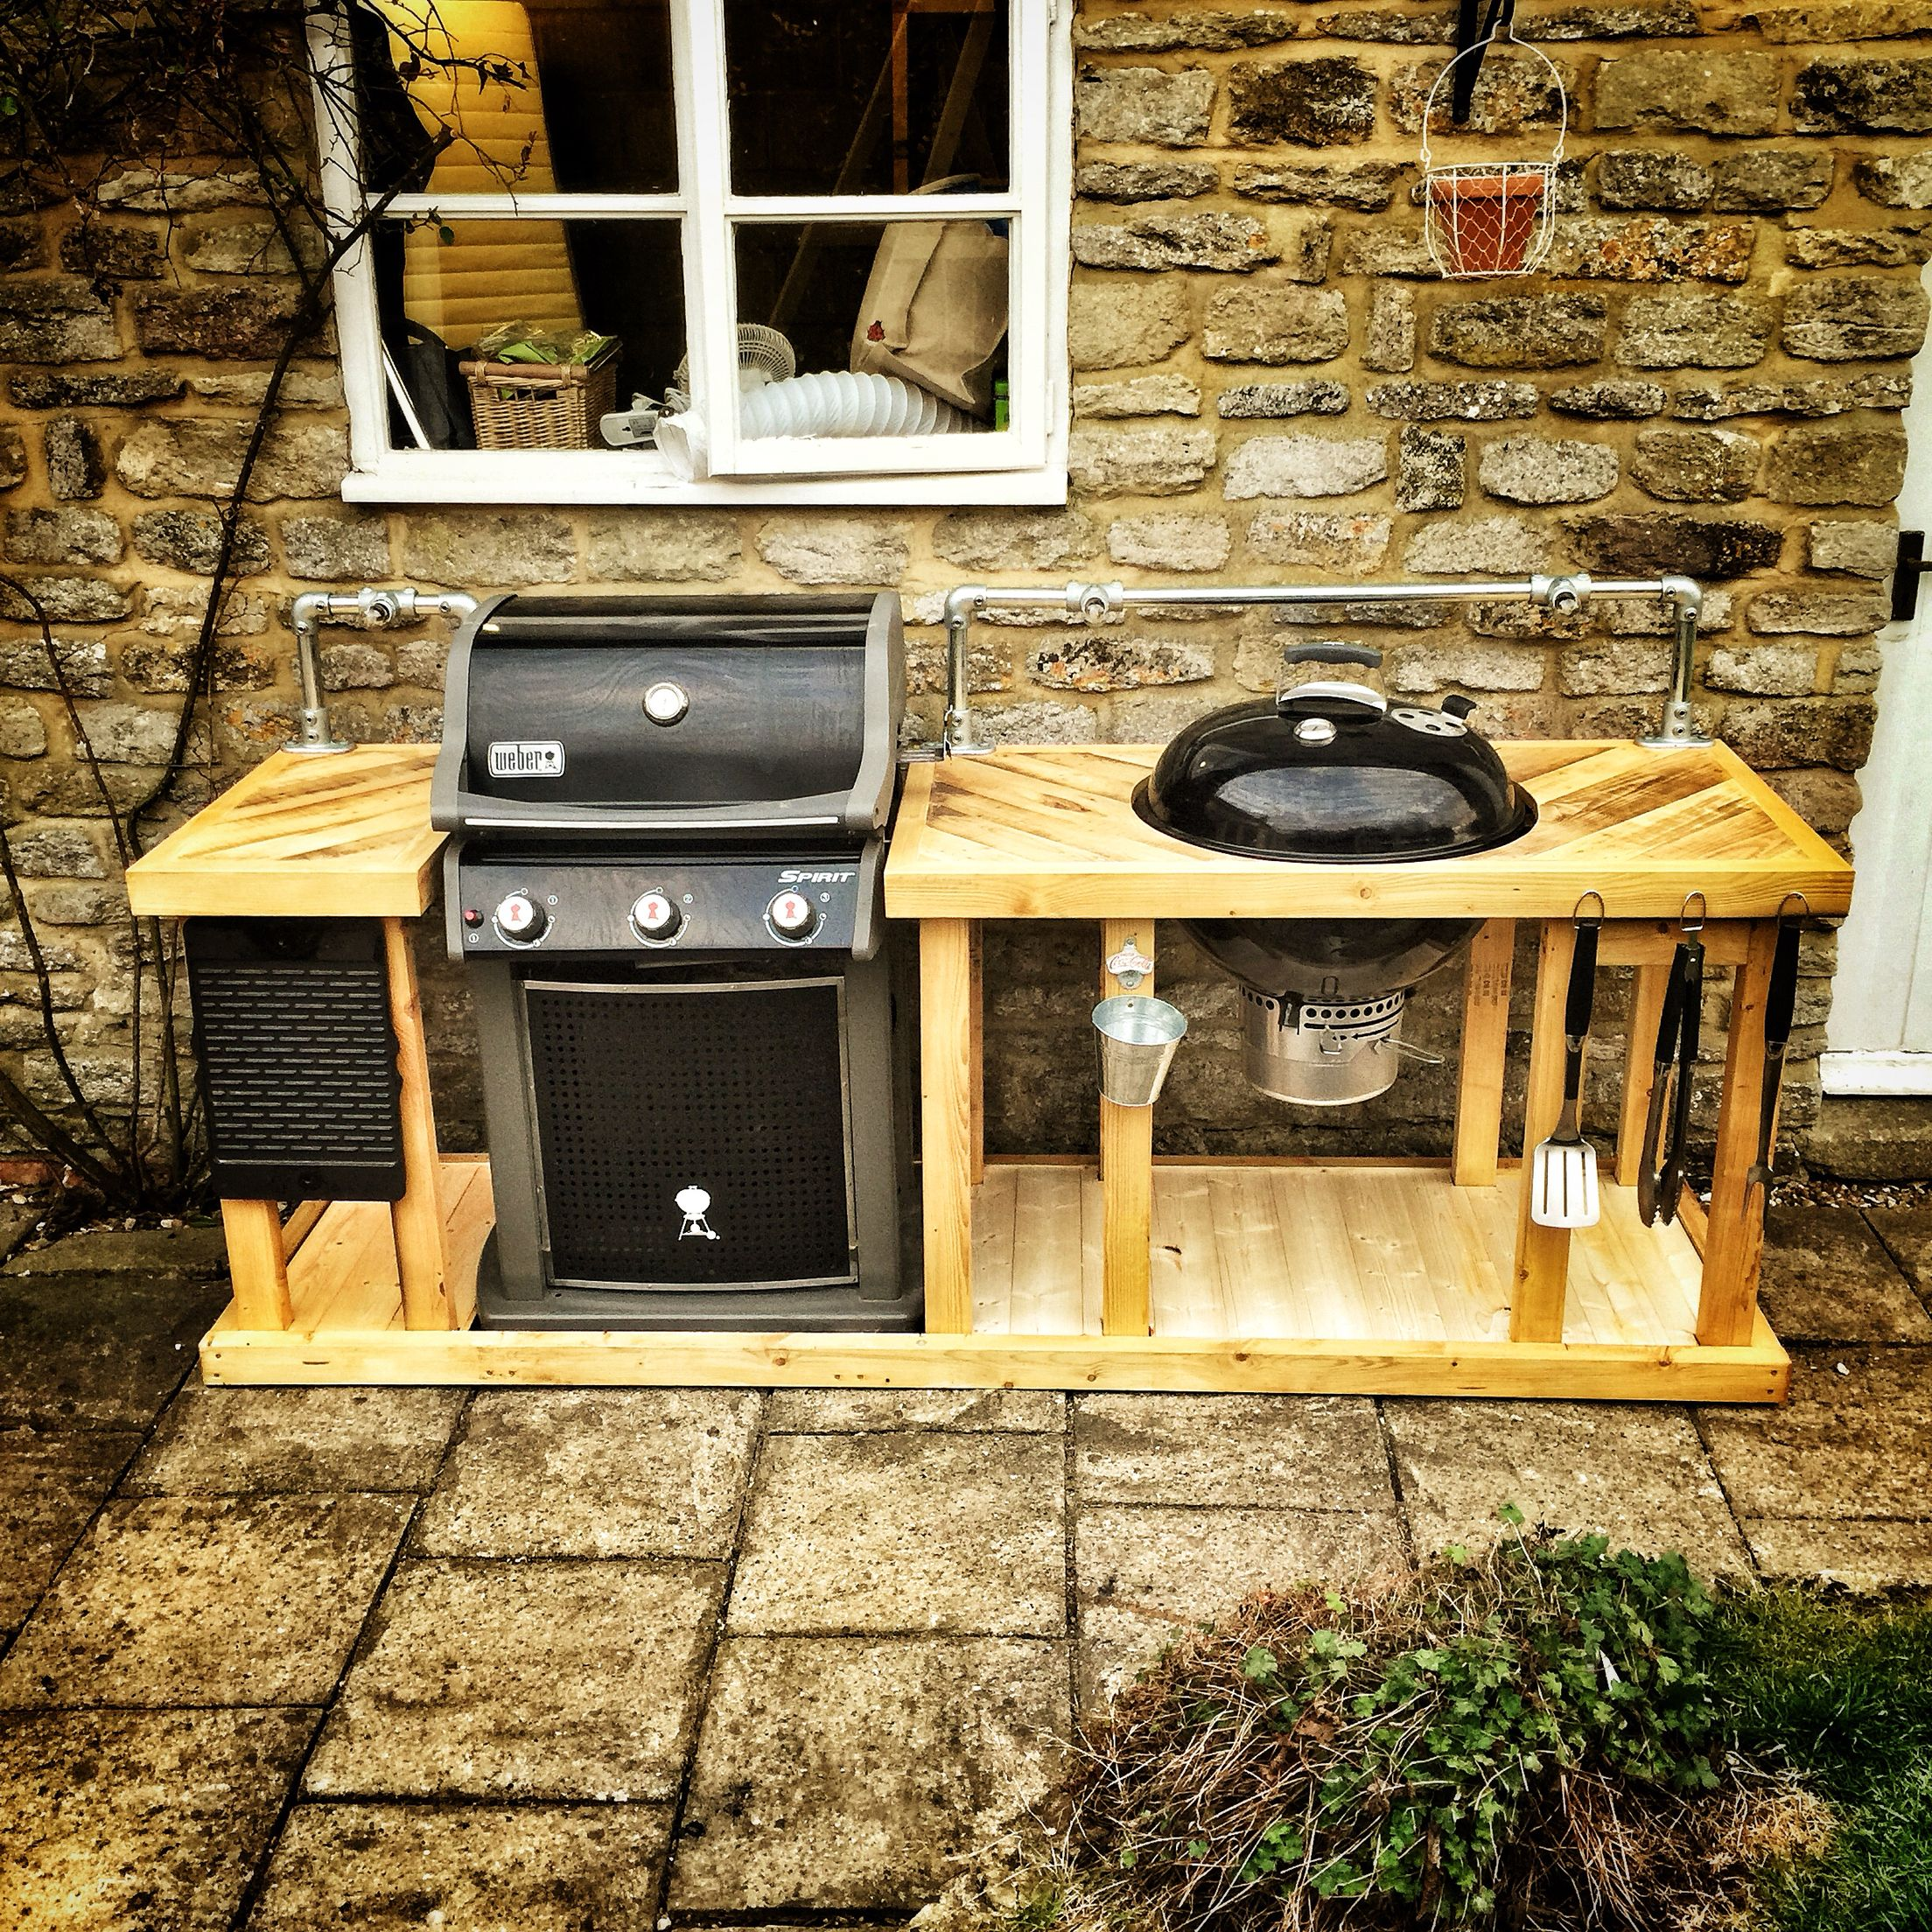 A Weber Mega Grill Combining A Weber Gas And Charcoal Bbq Into An Interesting Outdoor Kitchen Charcoal Grill Review